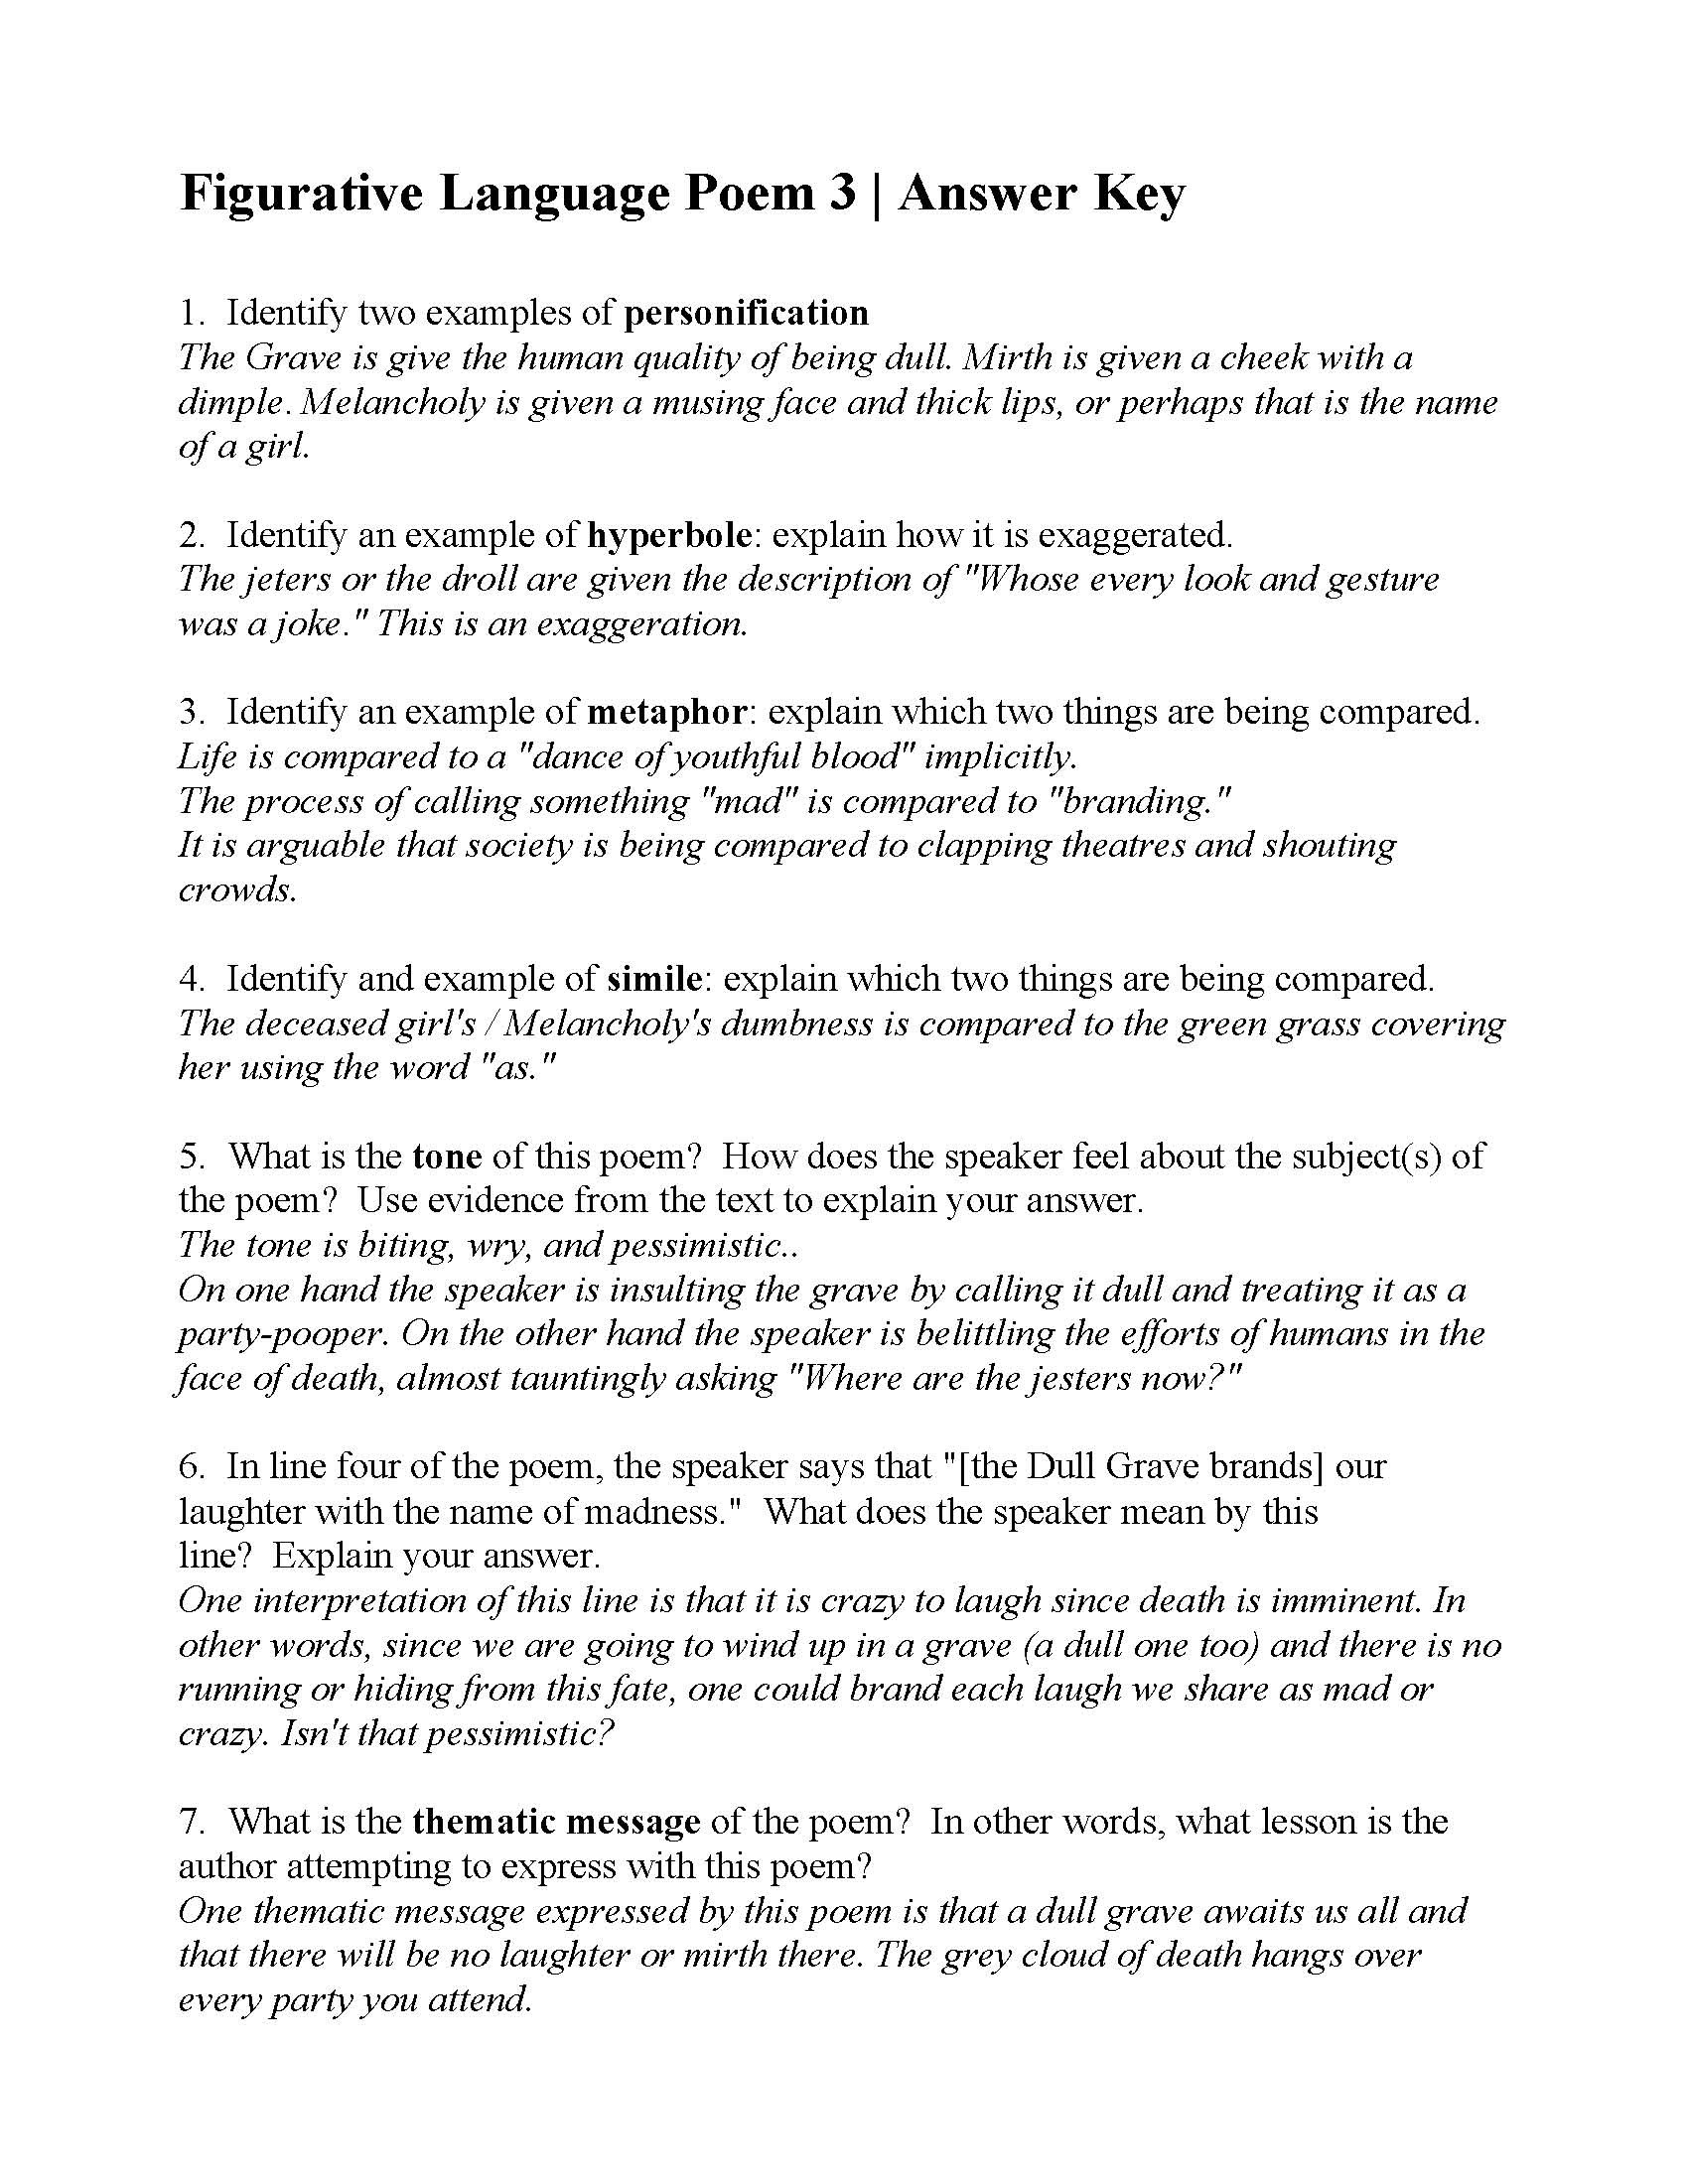 Free Printable Figurative Language Worksheets Figurative Language Poem From the Grave by Robert Answers